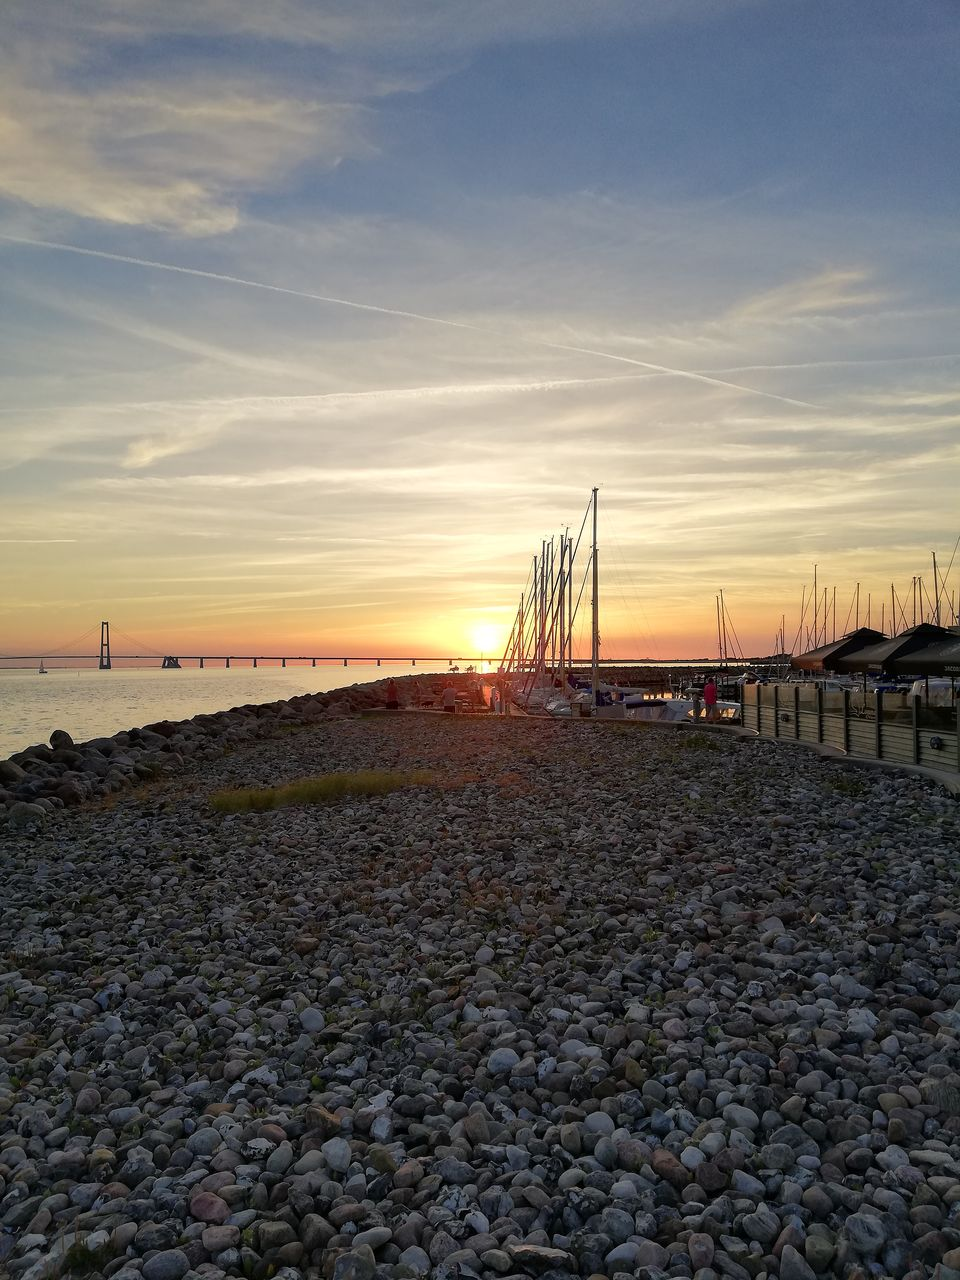 water, sky, sunset, sea, beach, cloud - sky, rock, land, scenics - nature, nature, solid, beauty in nature, stone - object, pebble, tranquil scene, tranquility, stone, rock - object, no people, outdoors, sailboat, groyne